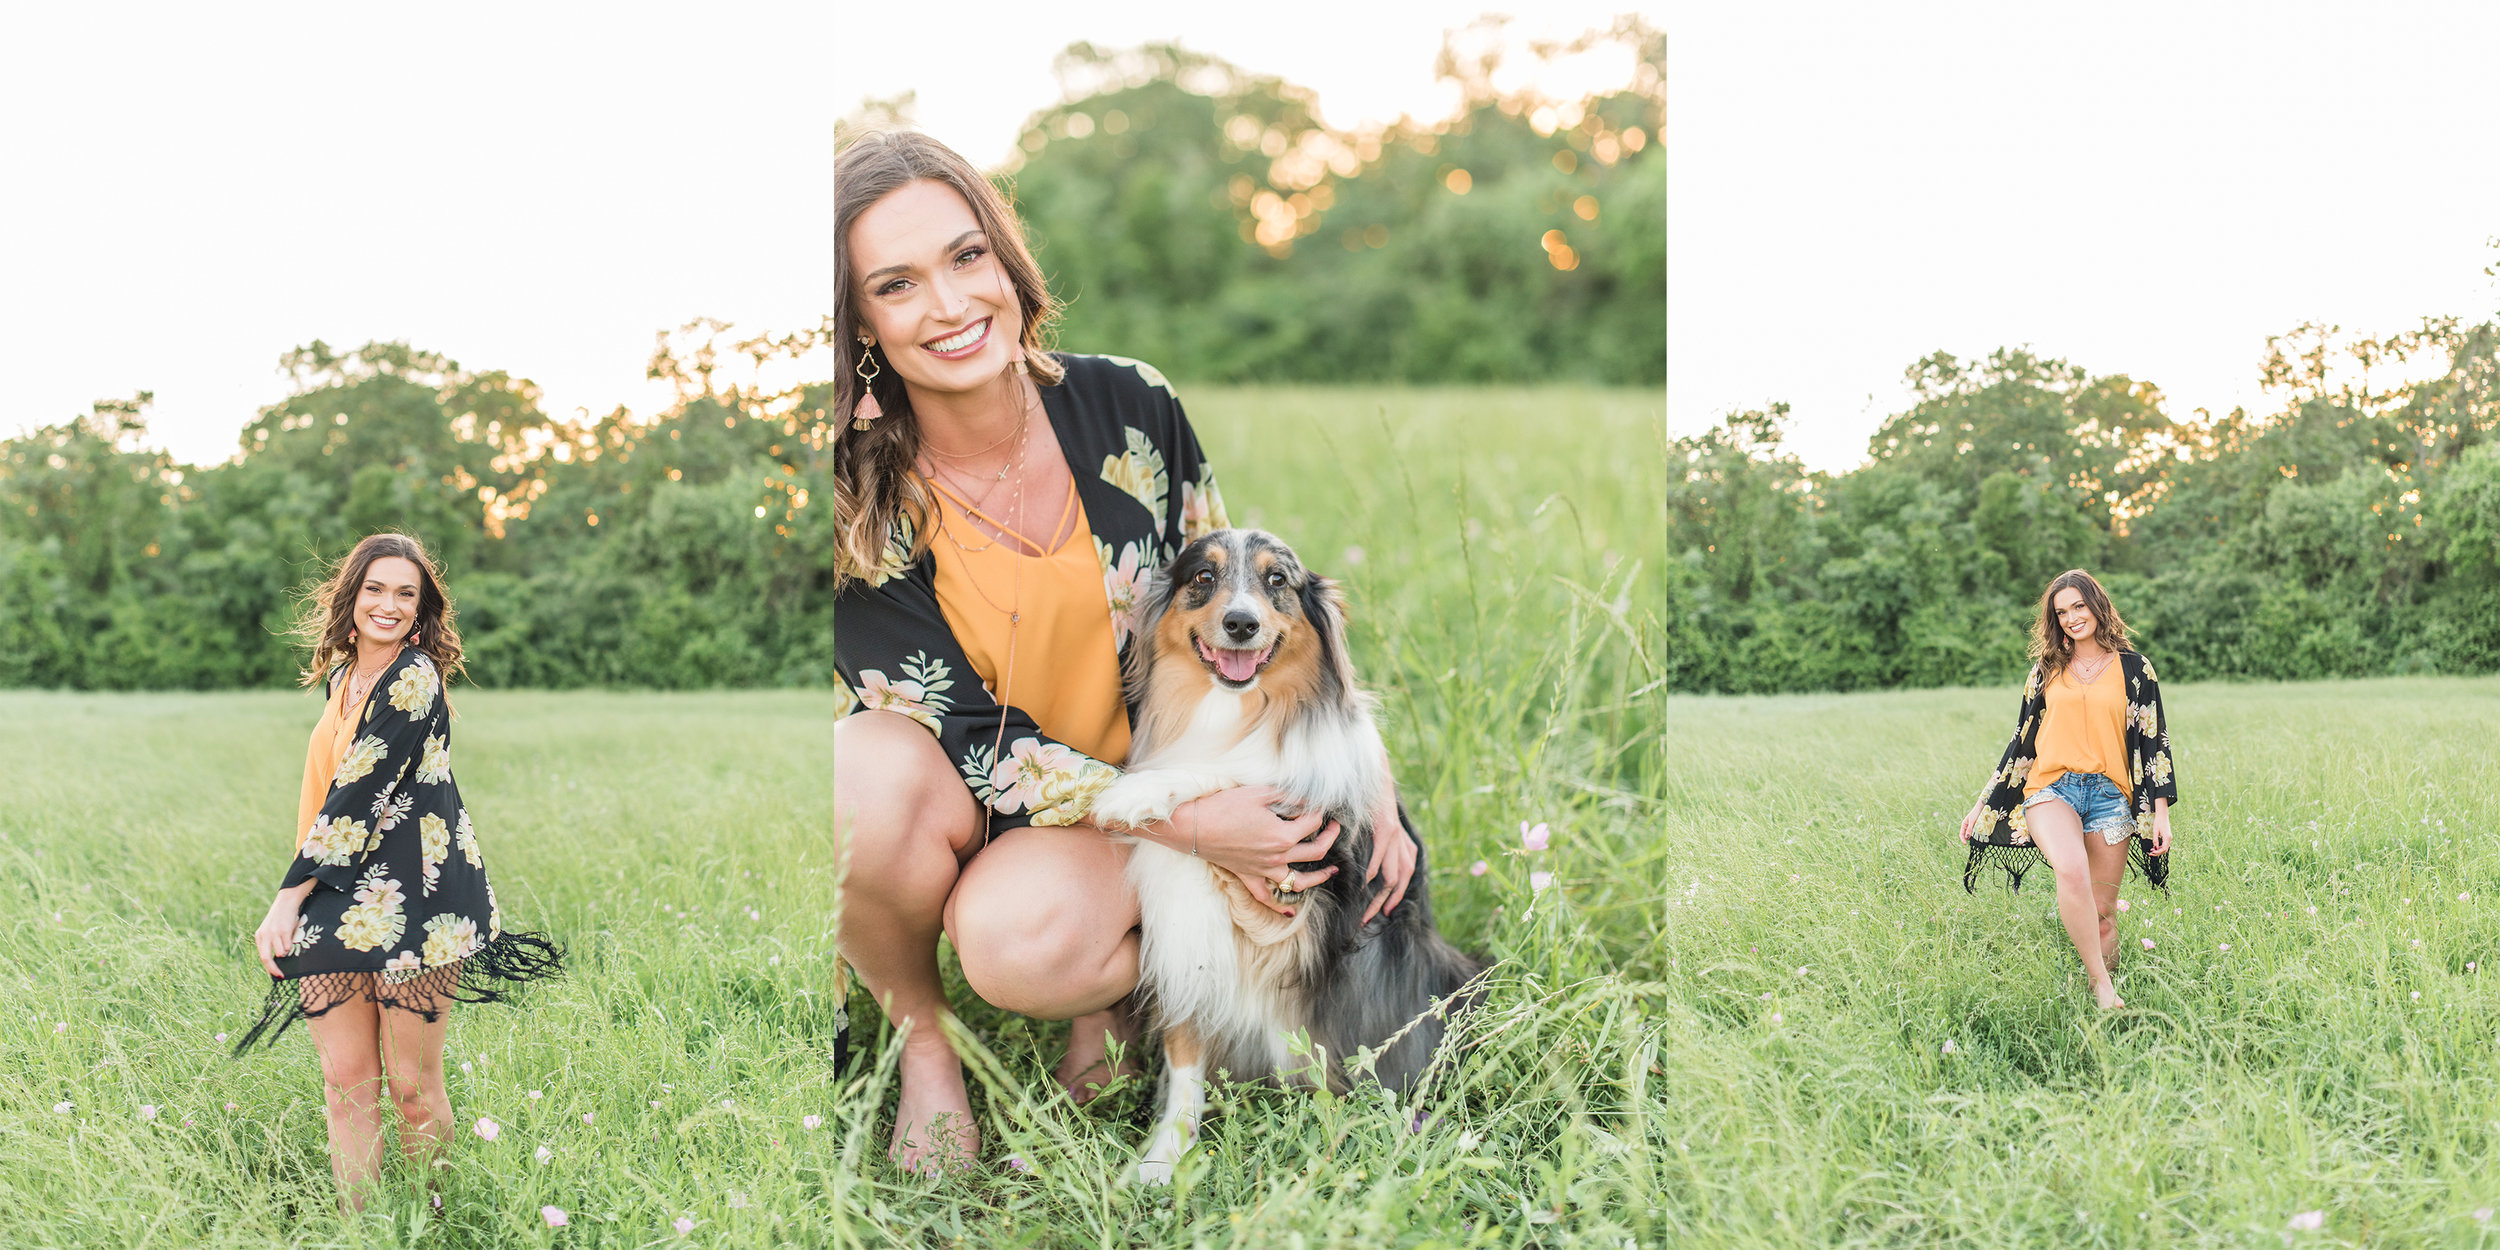 Katelyn Todd Photography | College Station, TX Photographer | Aggie Senior | Aggie Graduate | Senior Photography Session